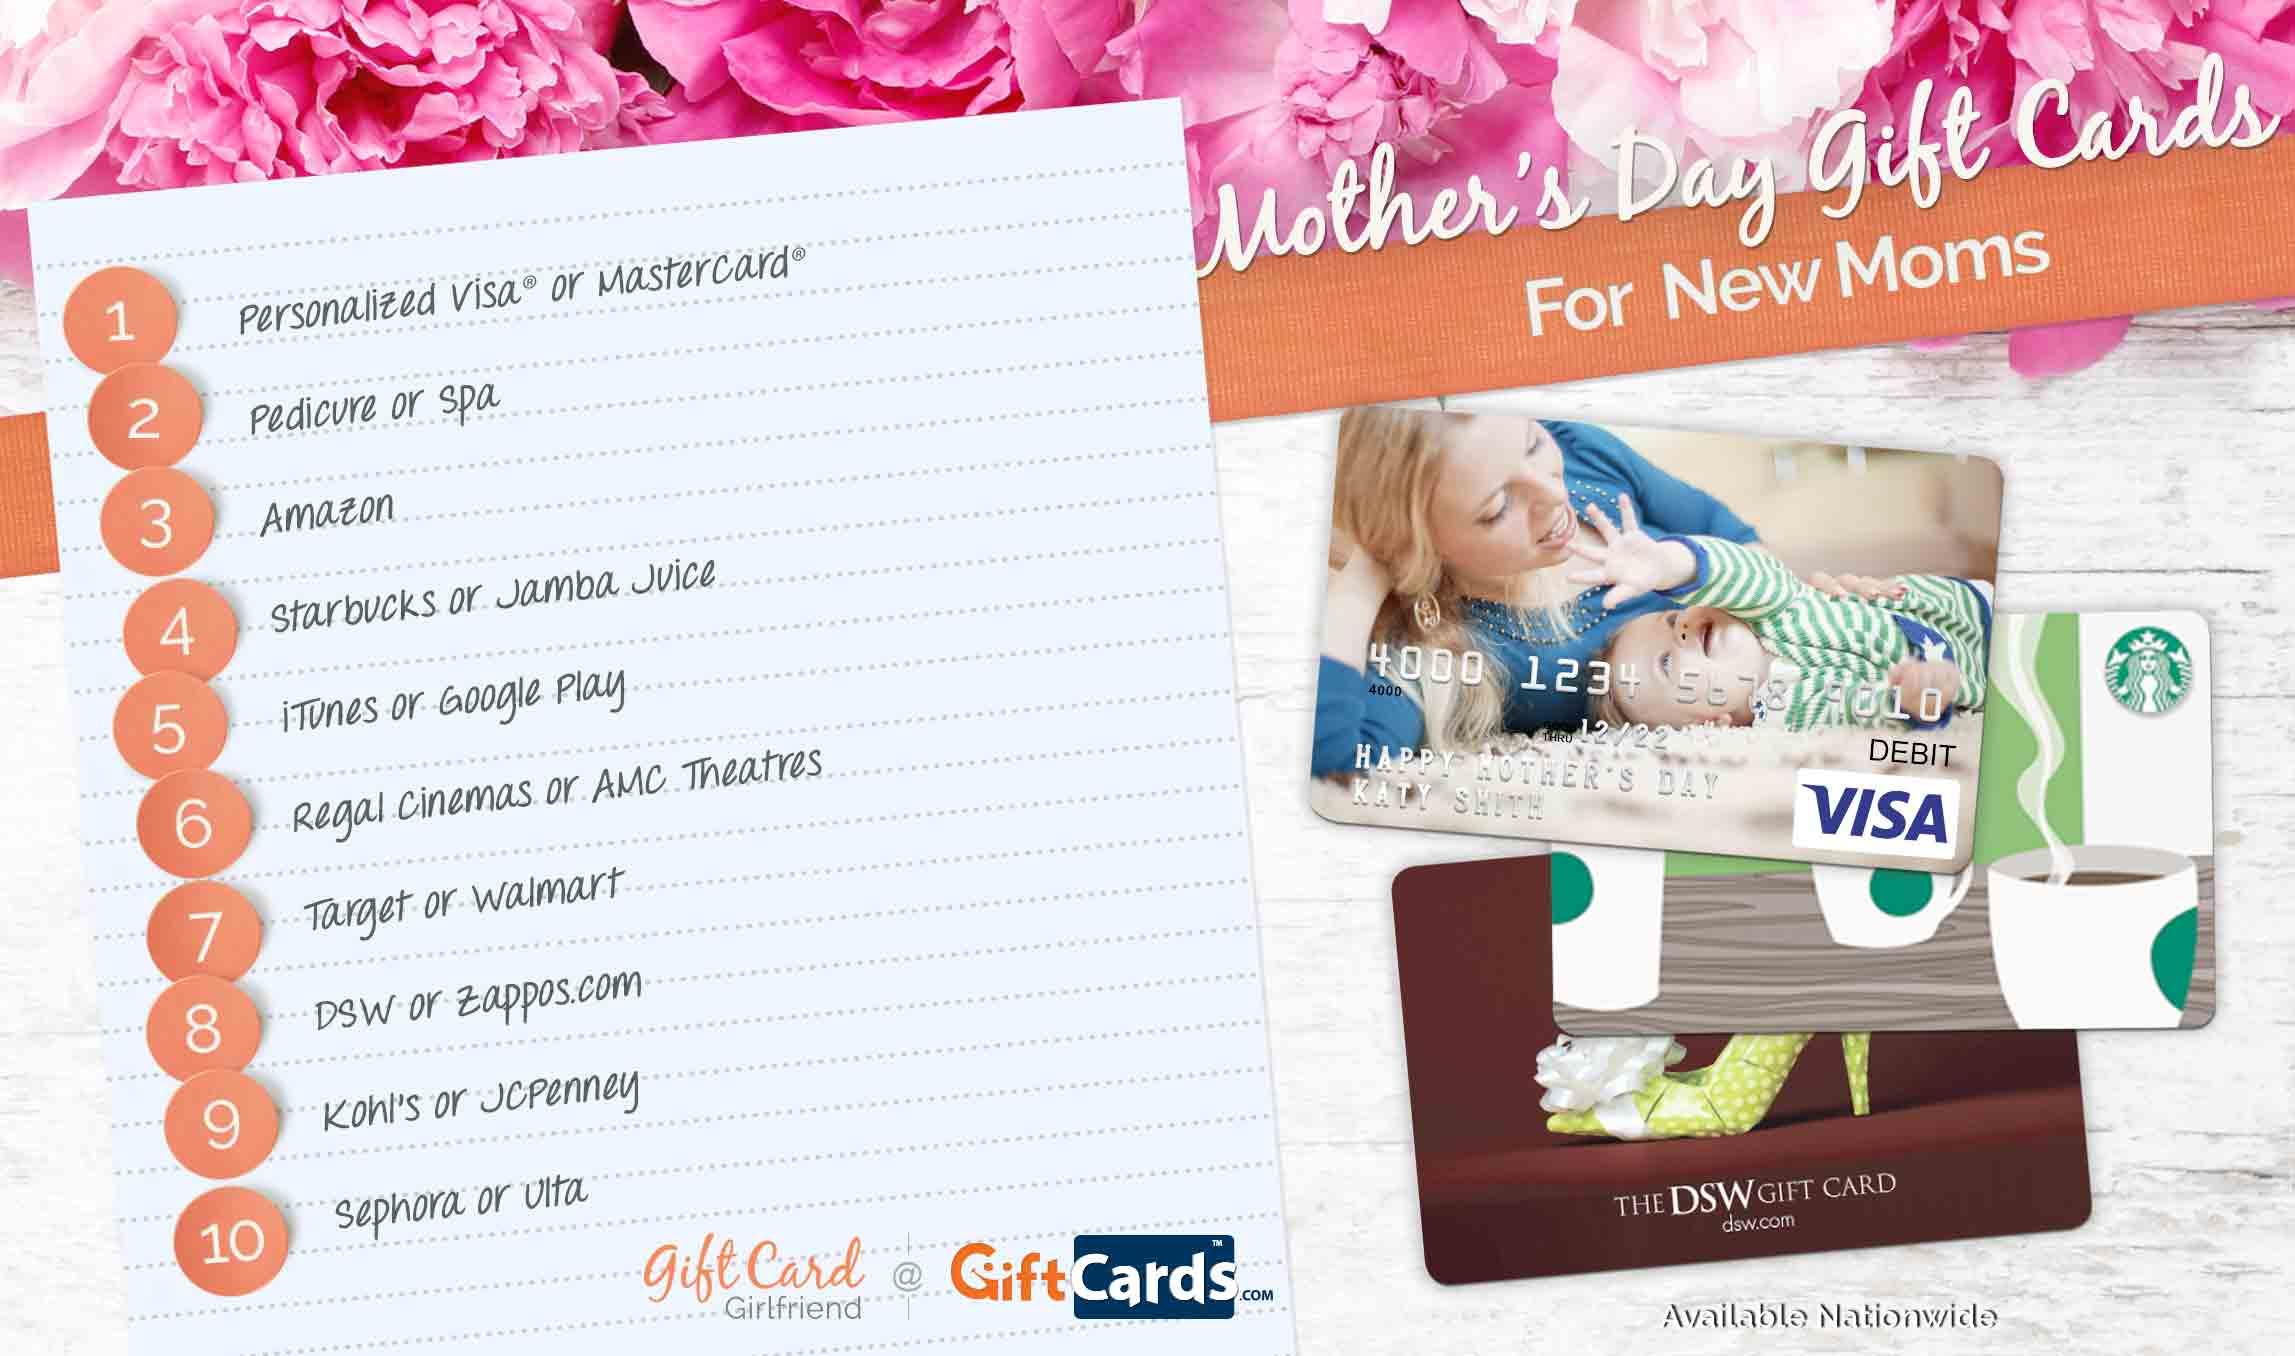 82f5ee01c3d6a Top 10 Mother's Day Gift Cards for New Moms | GCG